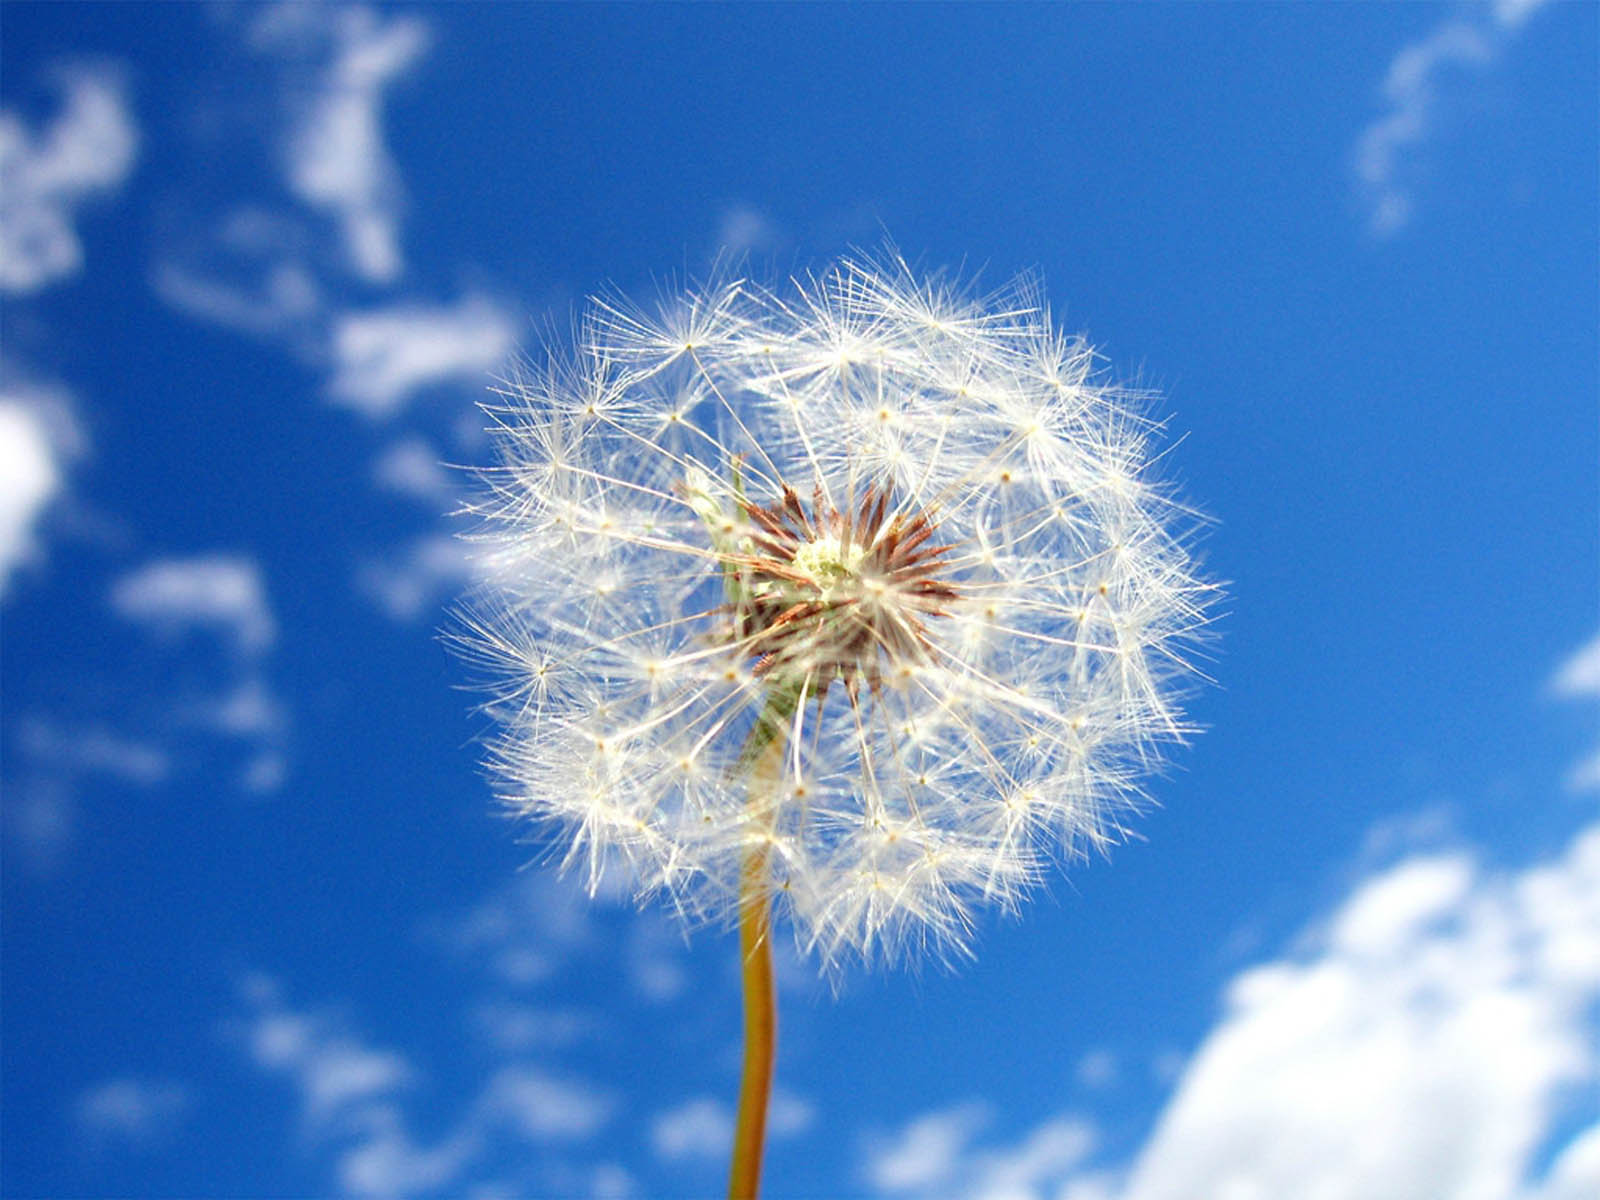 Tag Dandelion Flowers Wallpapers Backgrounds Paos Images and 1600x1200